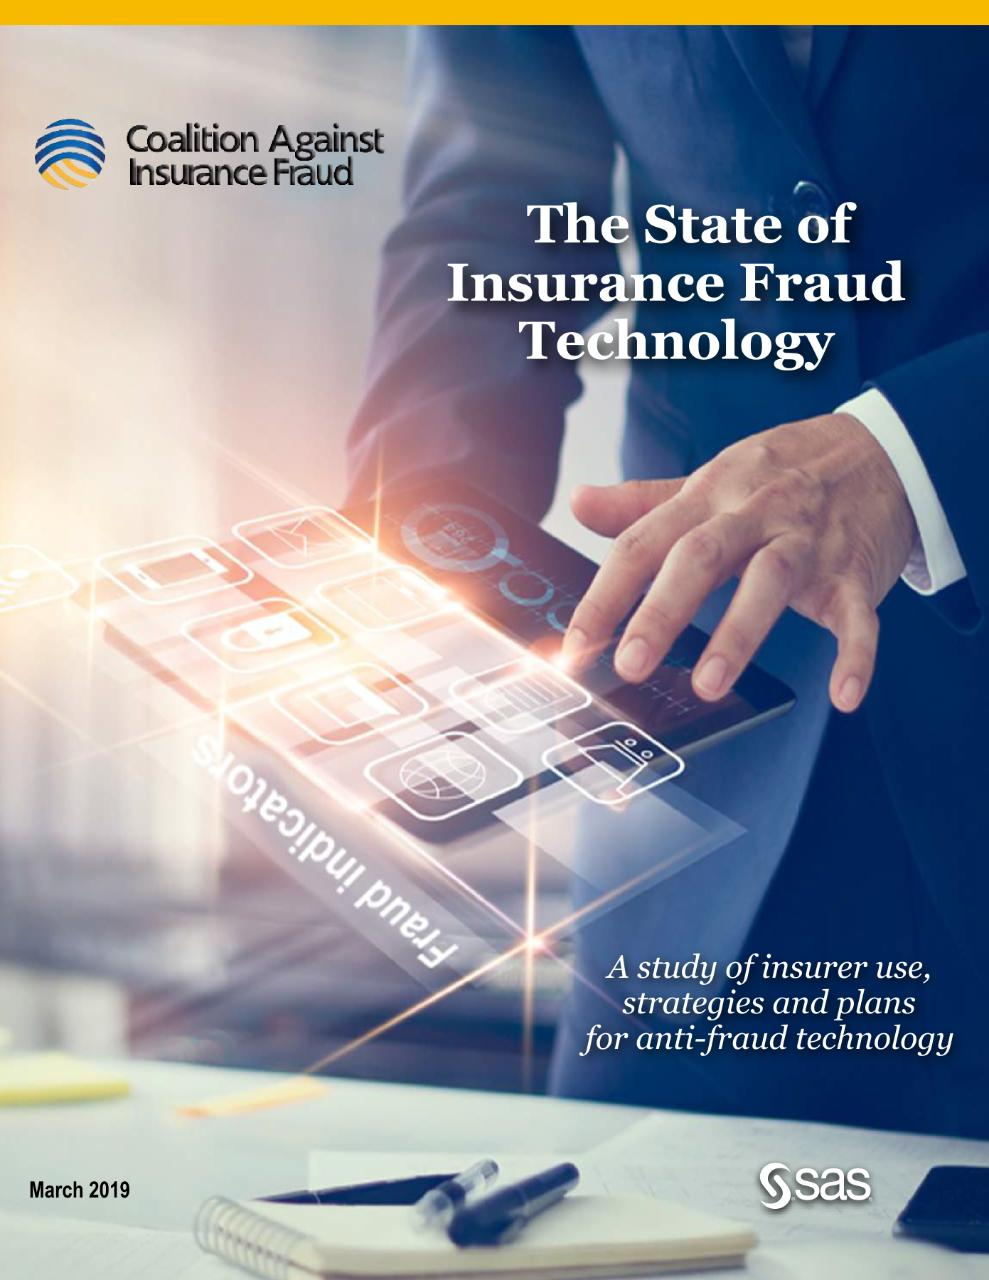 coalition-against-insurance-fraud-the-state-of-insurance-fraud-technology-105976